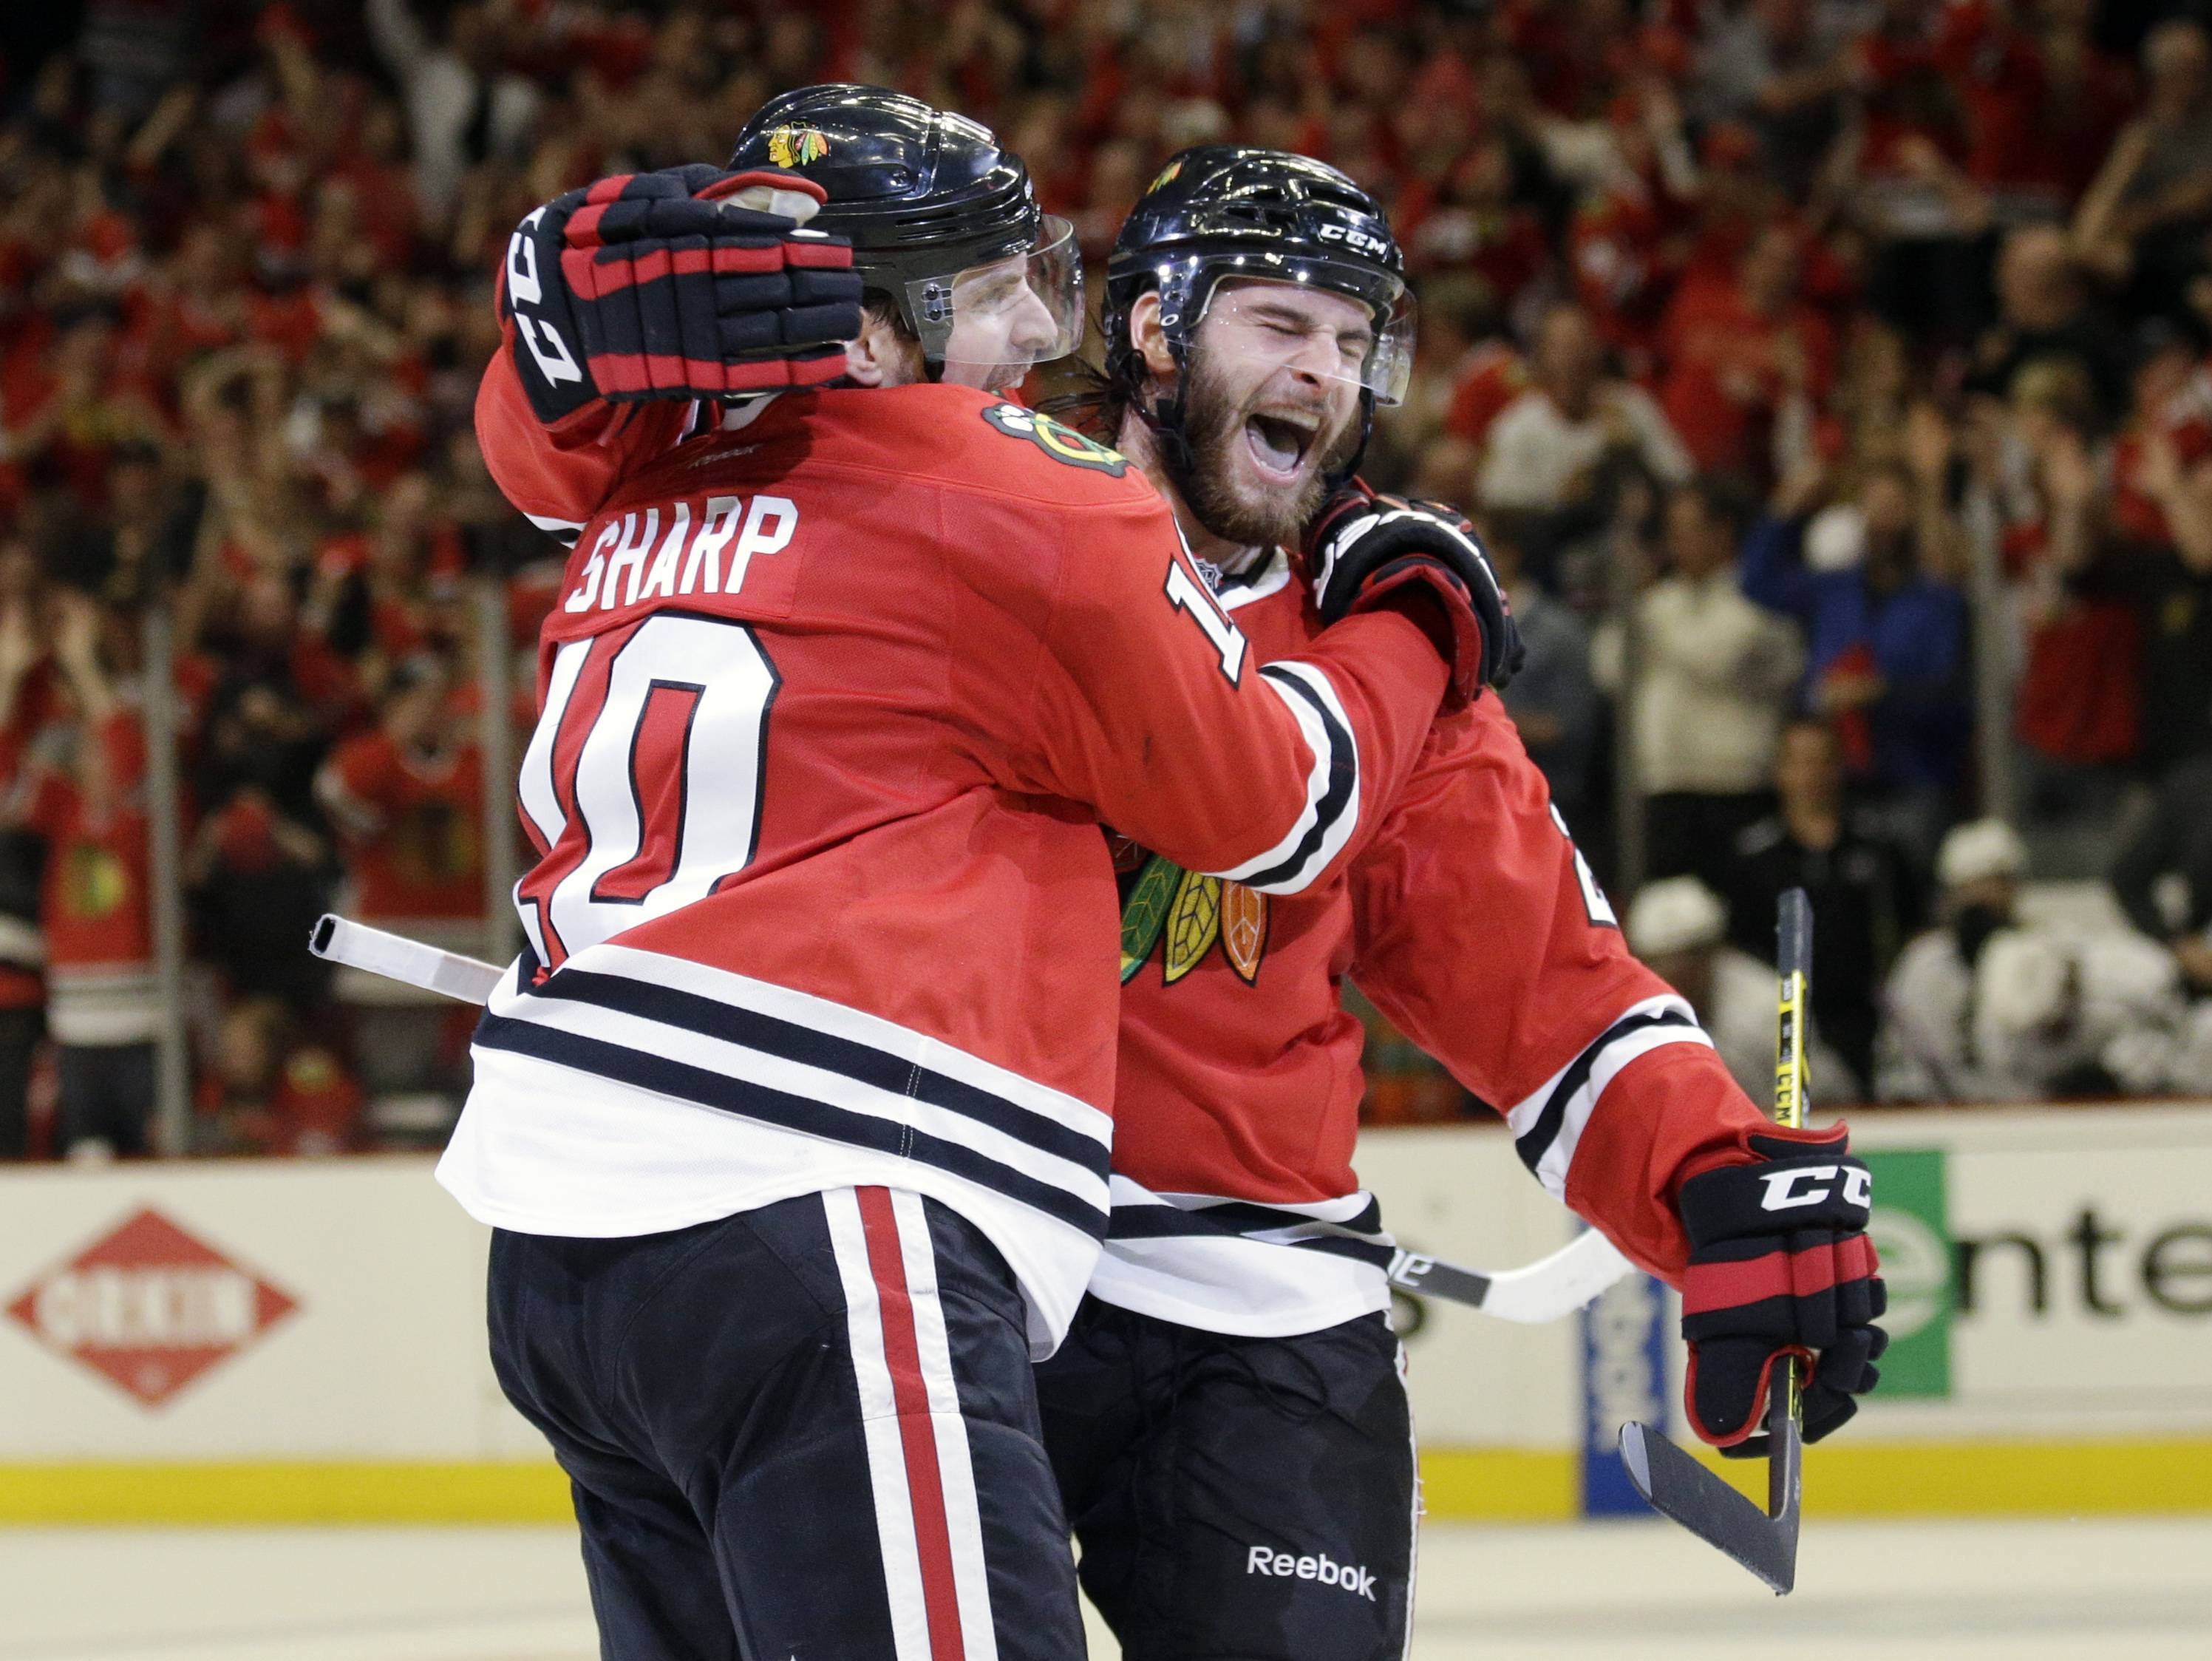 Blackhawks winger Brandon Saad, right, celebrates with Patrick Sharp on Sunday after Sharp's second-period goal.